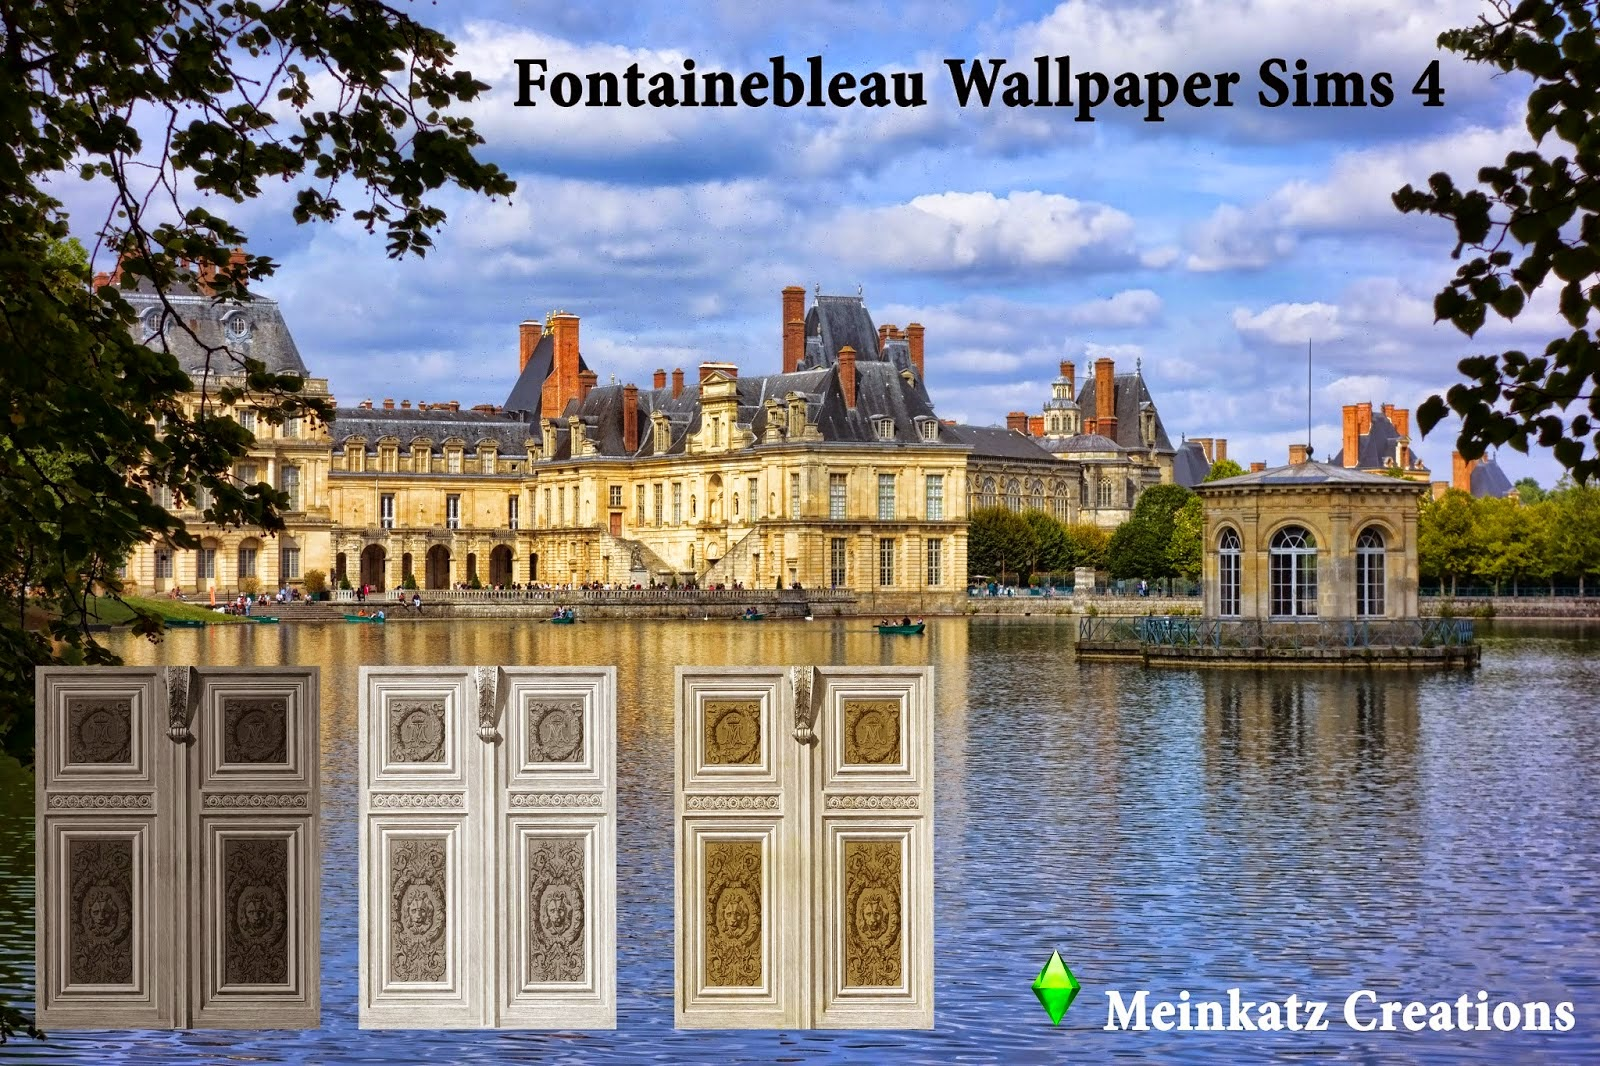 Sims 4 mods traits downloads 187 sims 4 updates 187 page 58 of 100 - Fontainebleau Wallpaper By Nicolas Lavigne